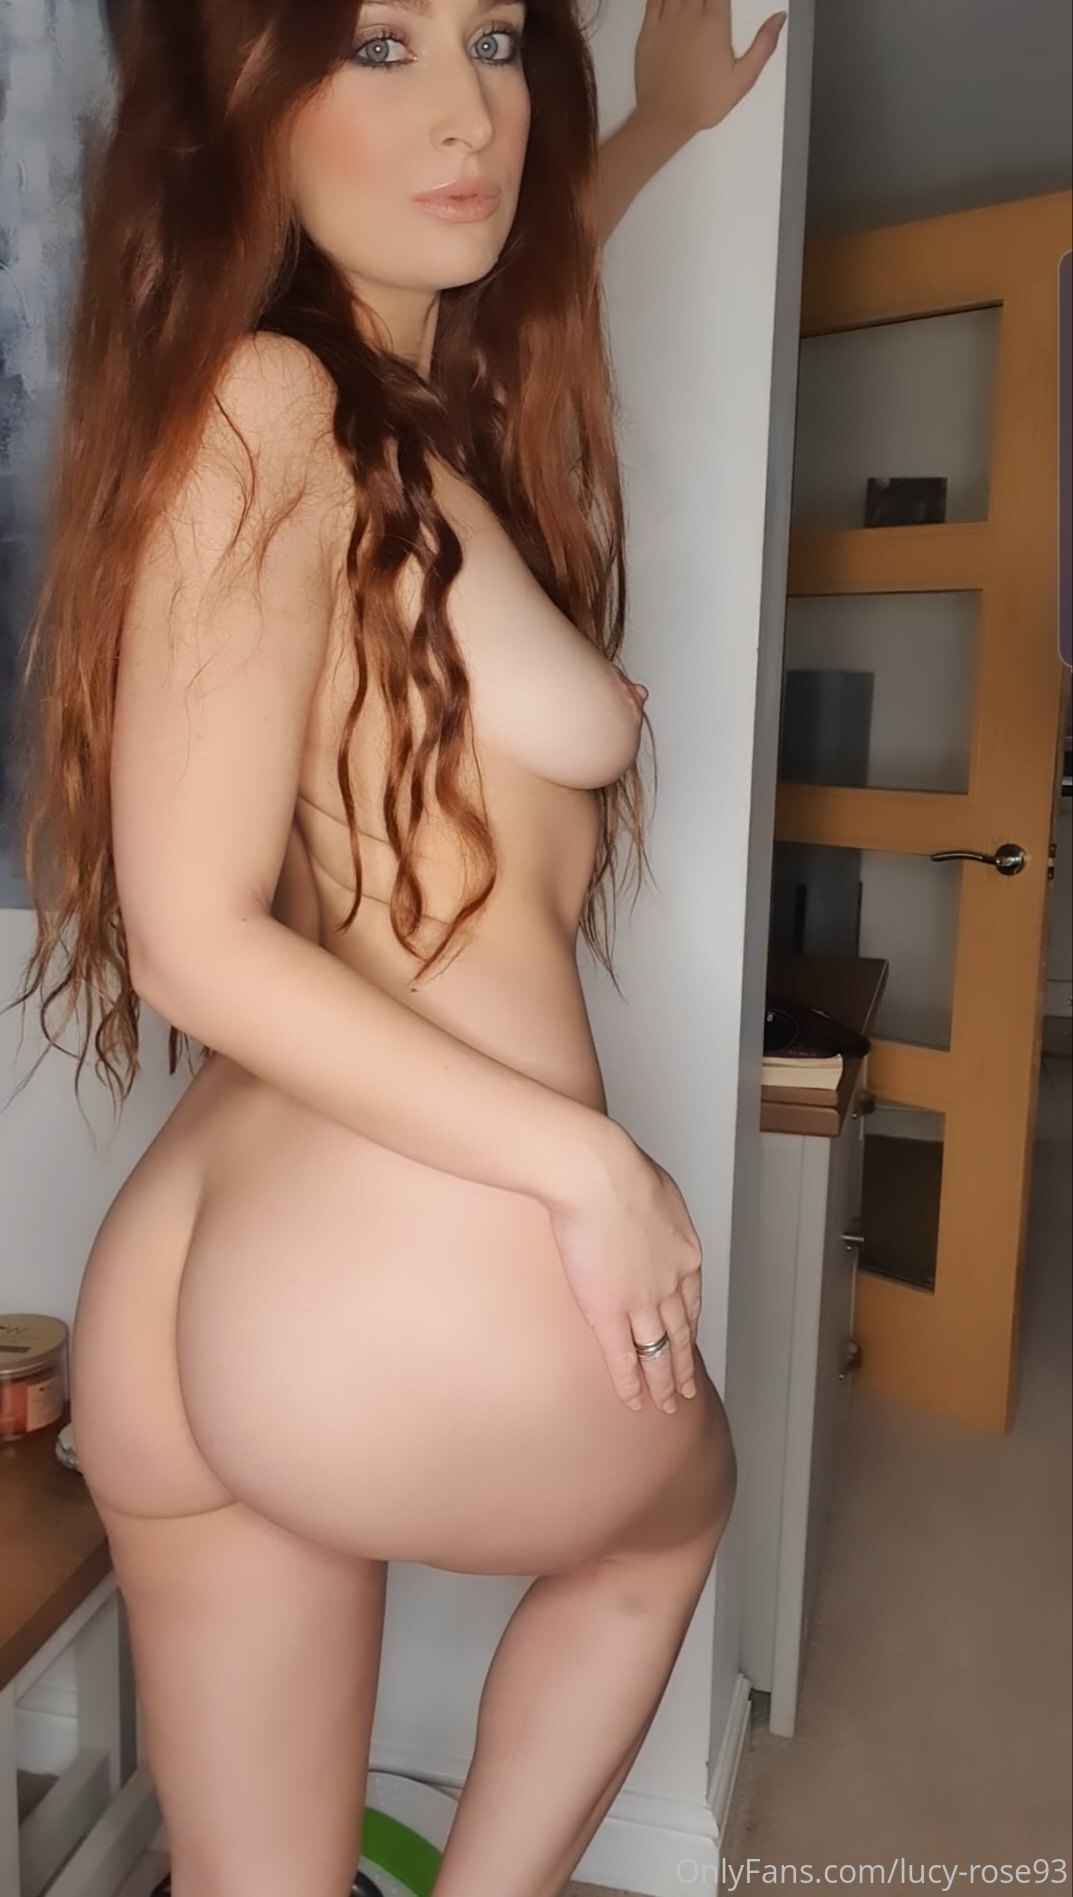 Lucy Rose, Lucy Rose93, Onlyfans 0224